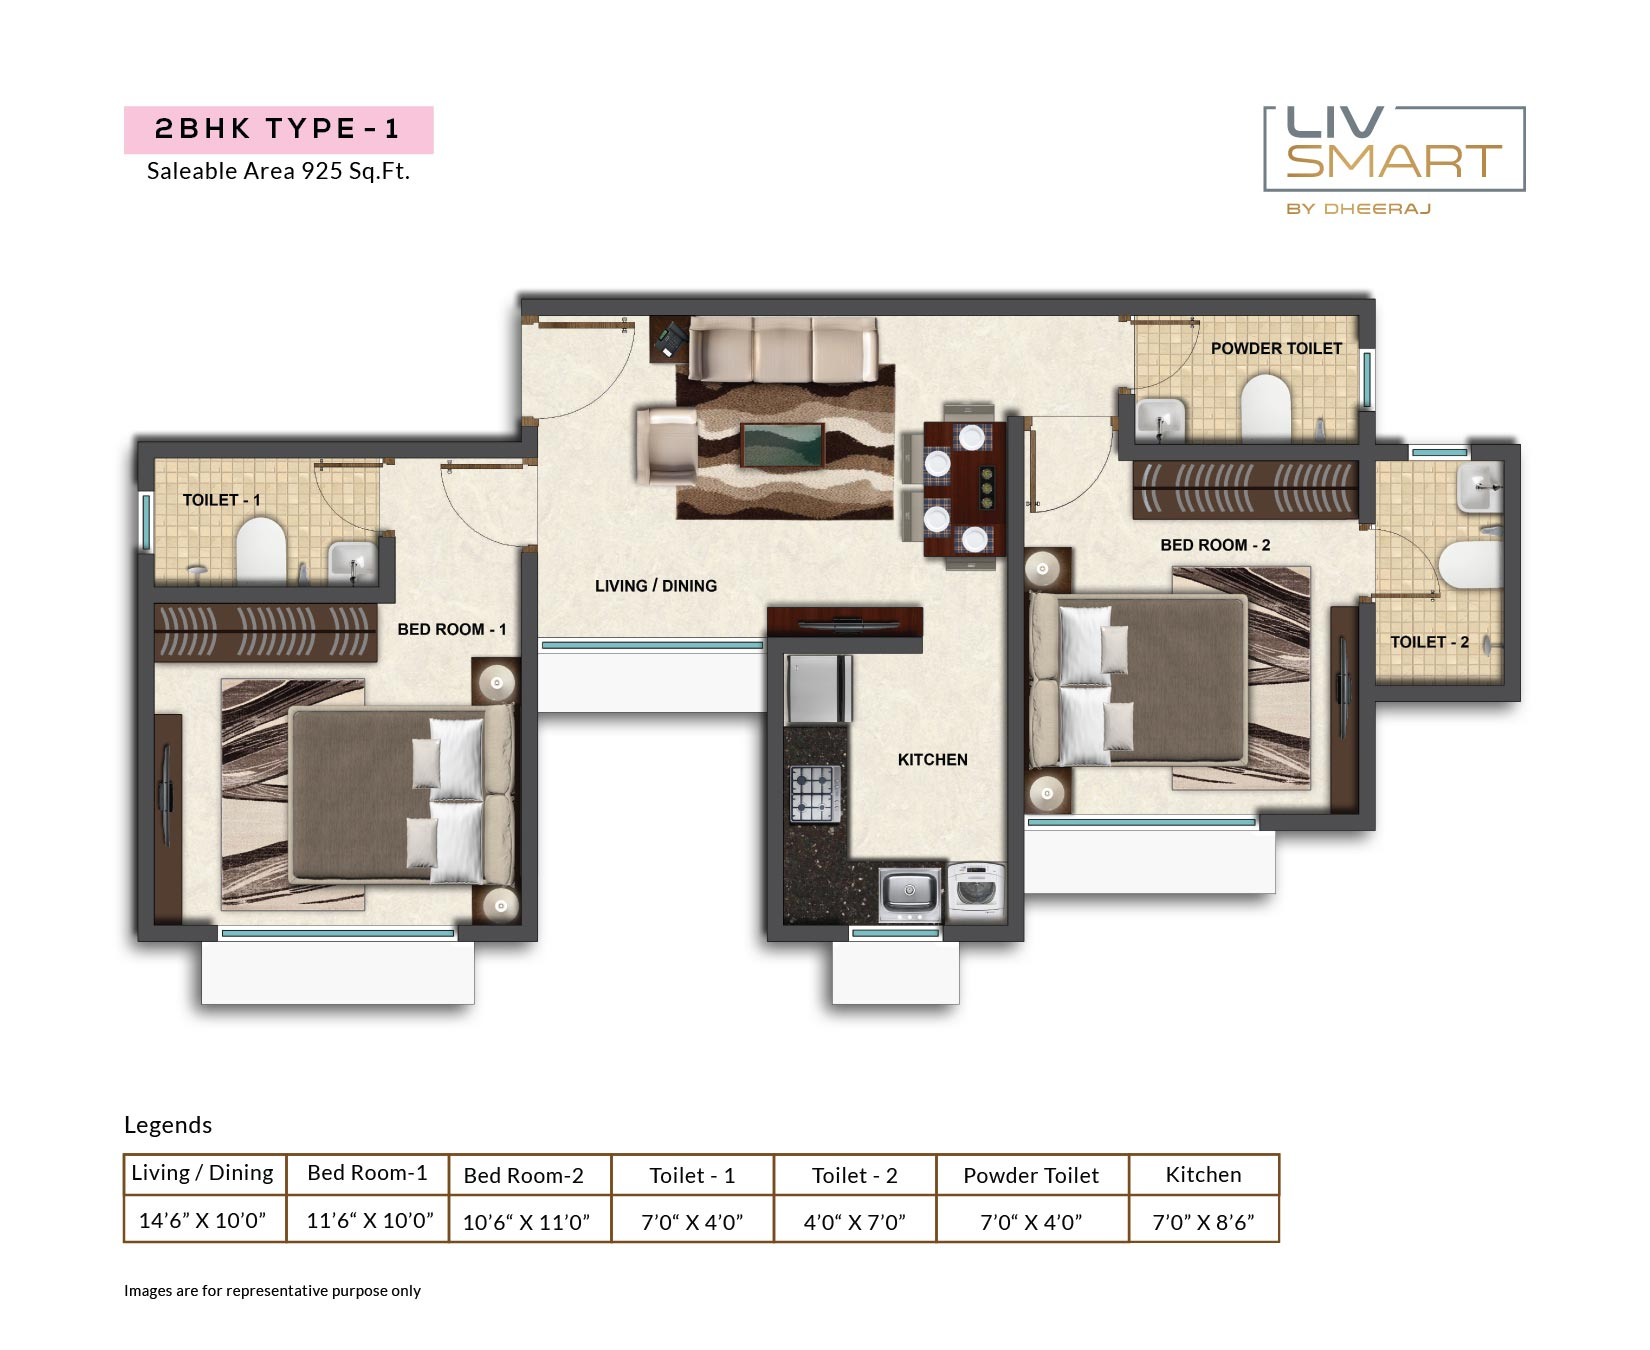 dheeraj liv smart apartment 2bhk 925sqft 1